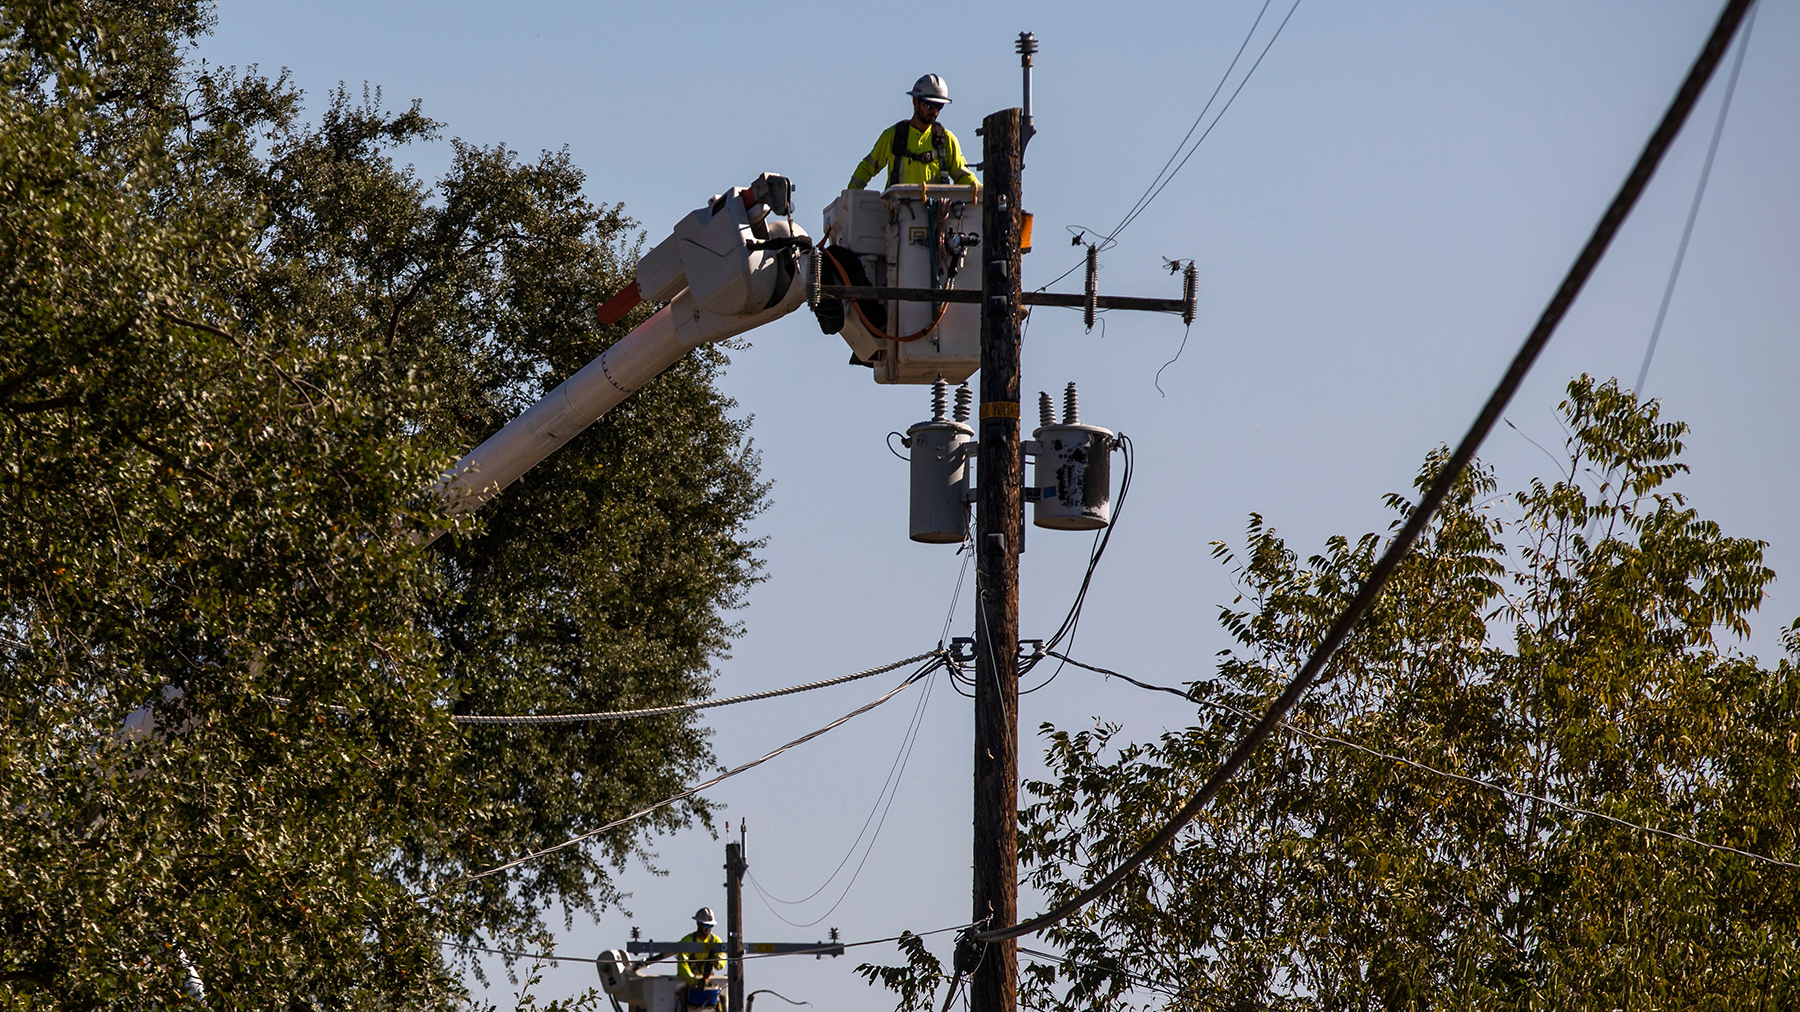 Contractors work on utility poles along Highway 128 near Geyserville, California, on October 31, 2019. Outages impacted much of the state this year, and health facilities were no exception. (Photo by Philip Pacheco / AFP via Getty Images)